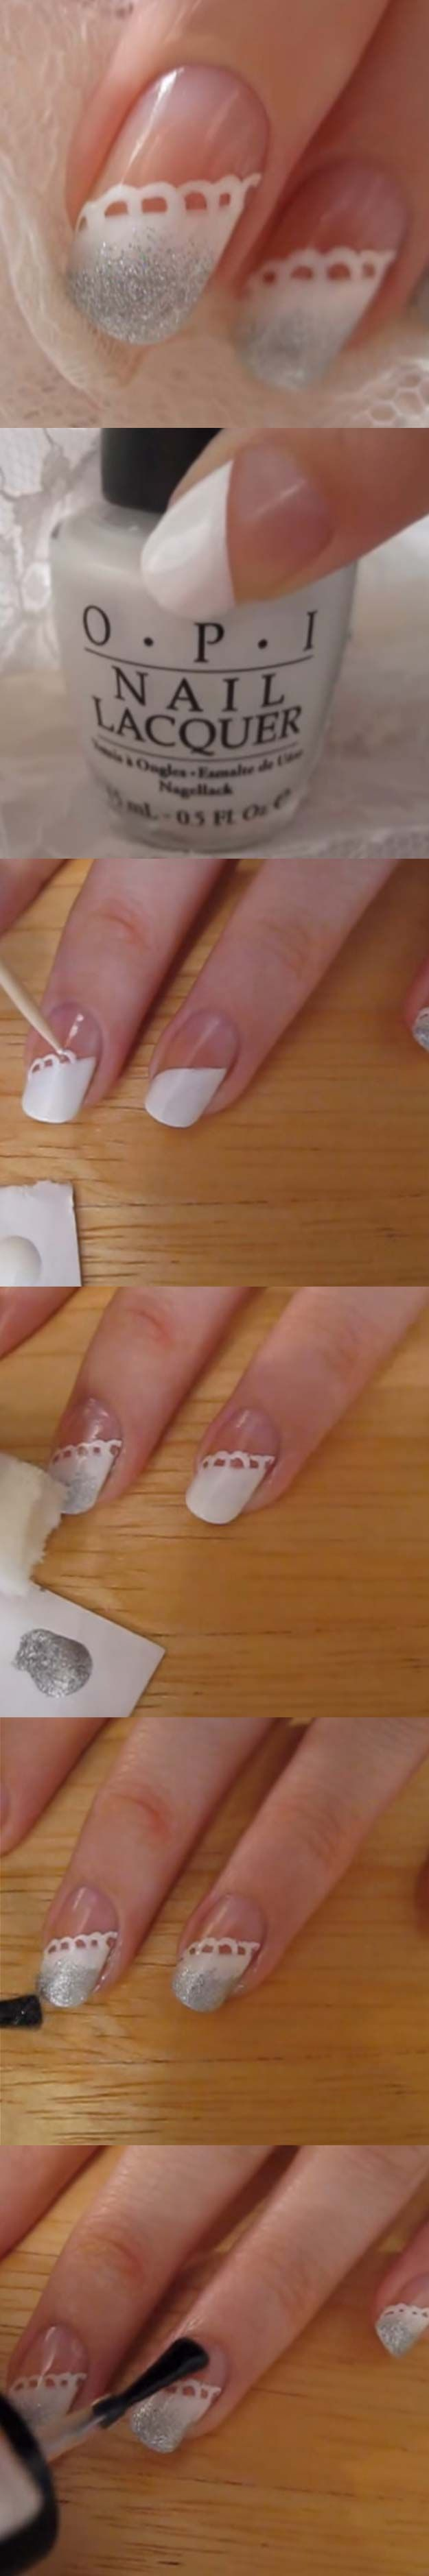 Best Nail Art Ideas for Brides - White Lace Nail - Simpe, Cute, DIY NailArt Tutorials That Are Step By Step For Brides. Everything From The Wedding Manicure To French Tips To Simple Sparkle and Bling For The Ring Finger. These Are Super Fun And Super Easy. - http://thegoddess.com/nail-art-ideas-for-brides